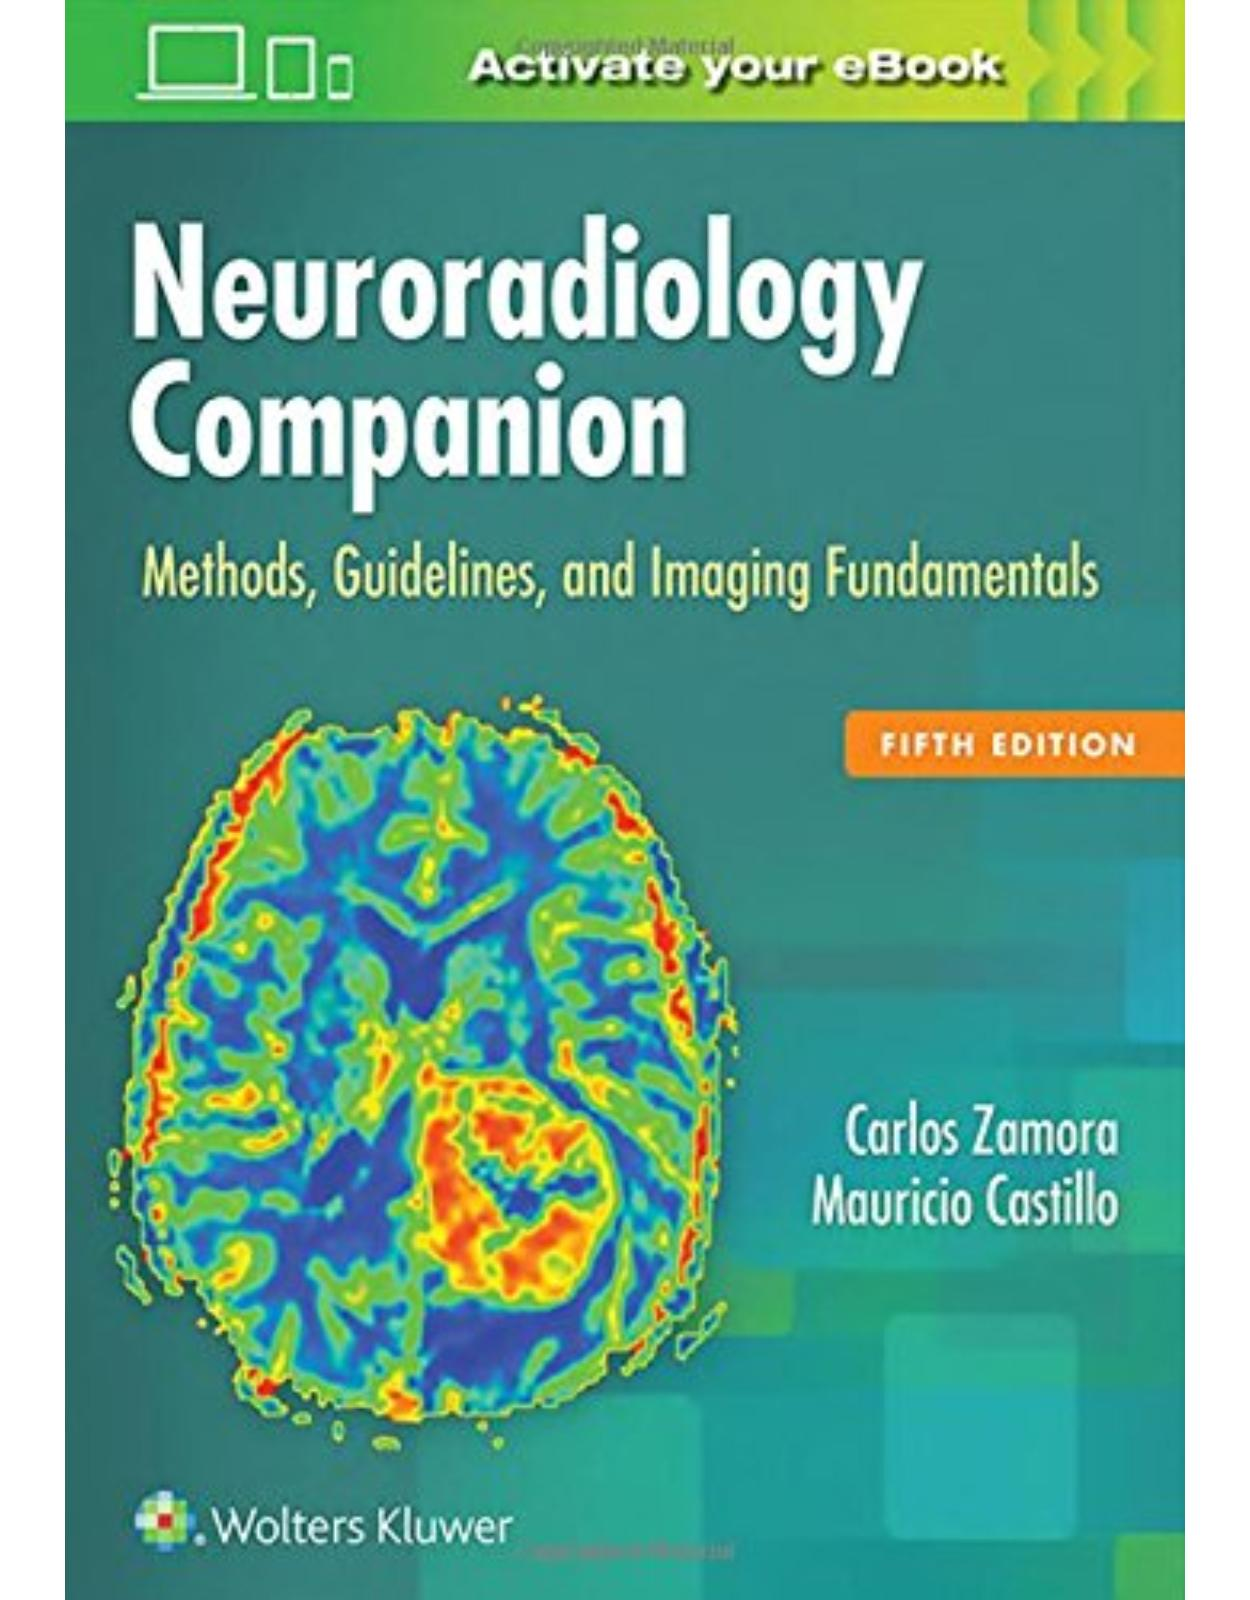 Neuroradiology Companion, 5e: Methods, Guidelines, and Imaging Fundamentals